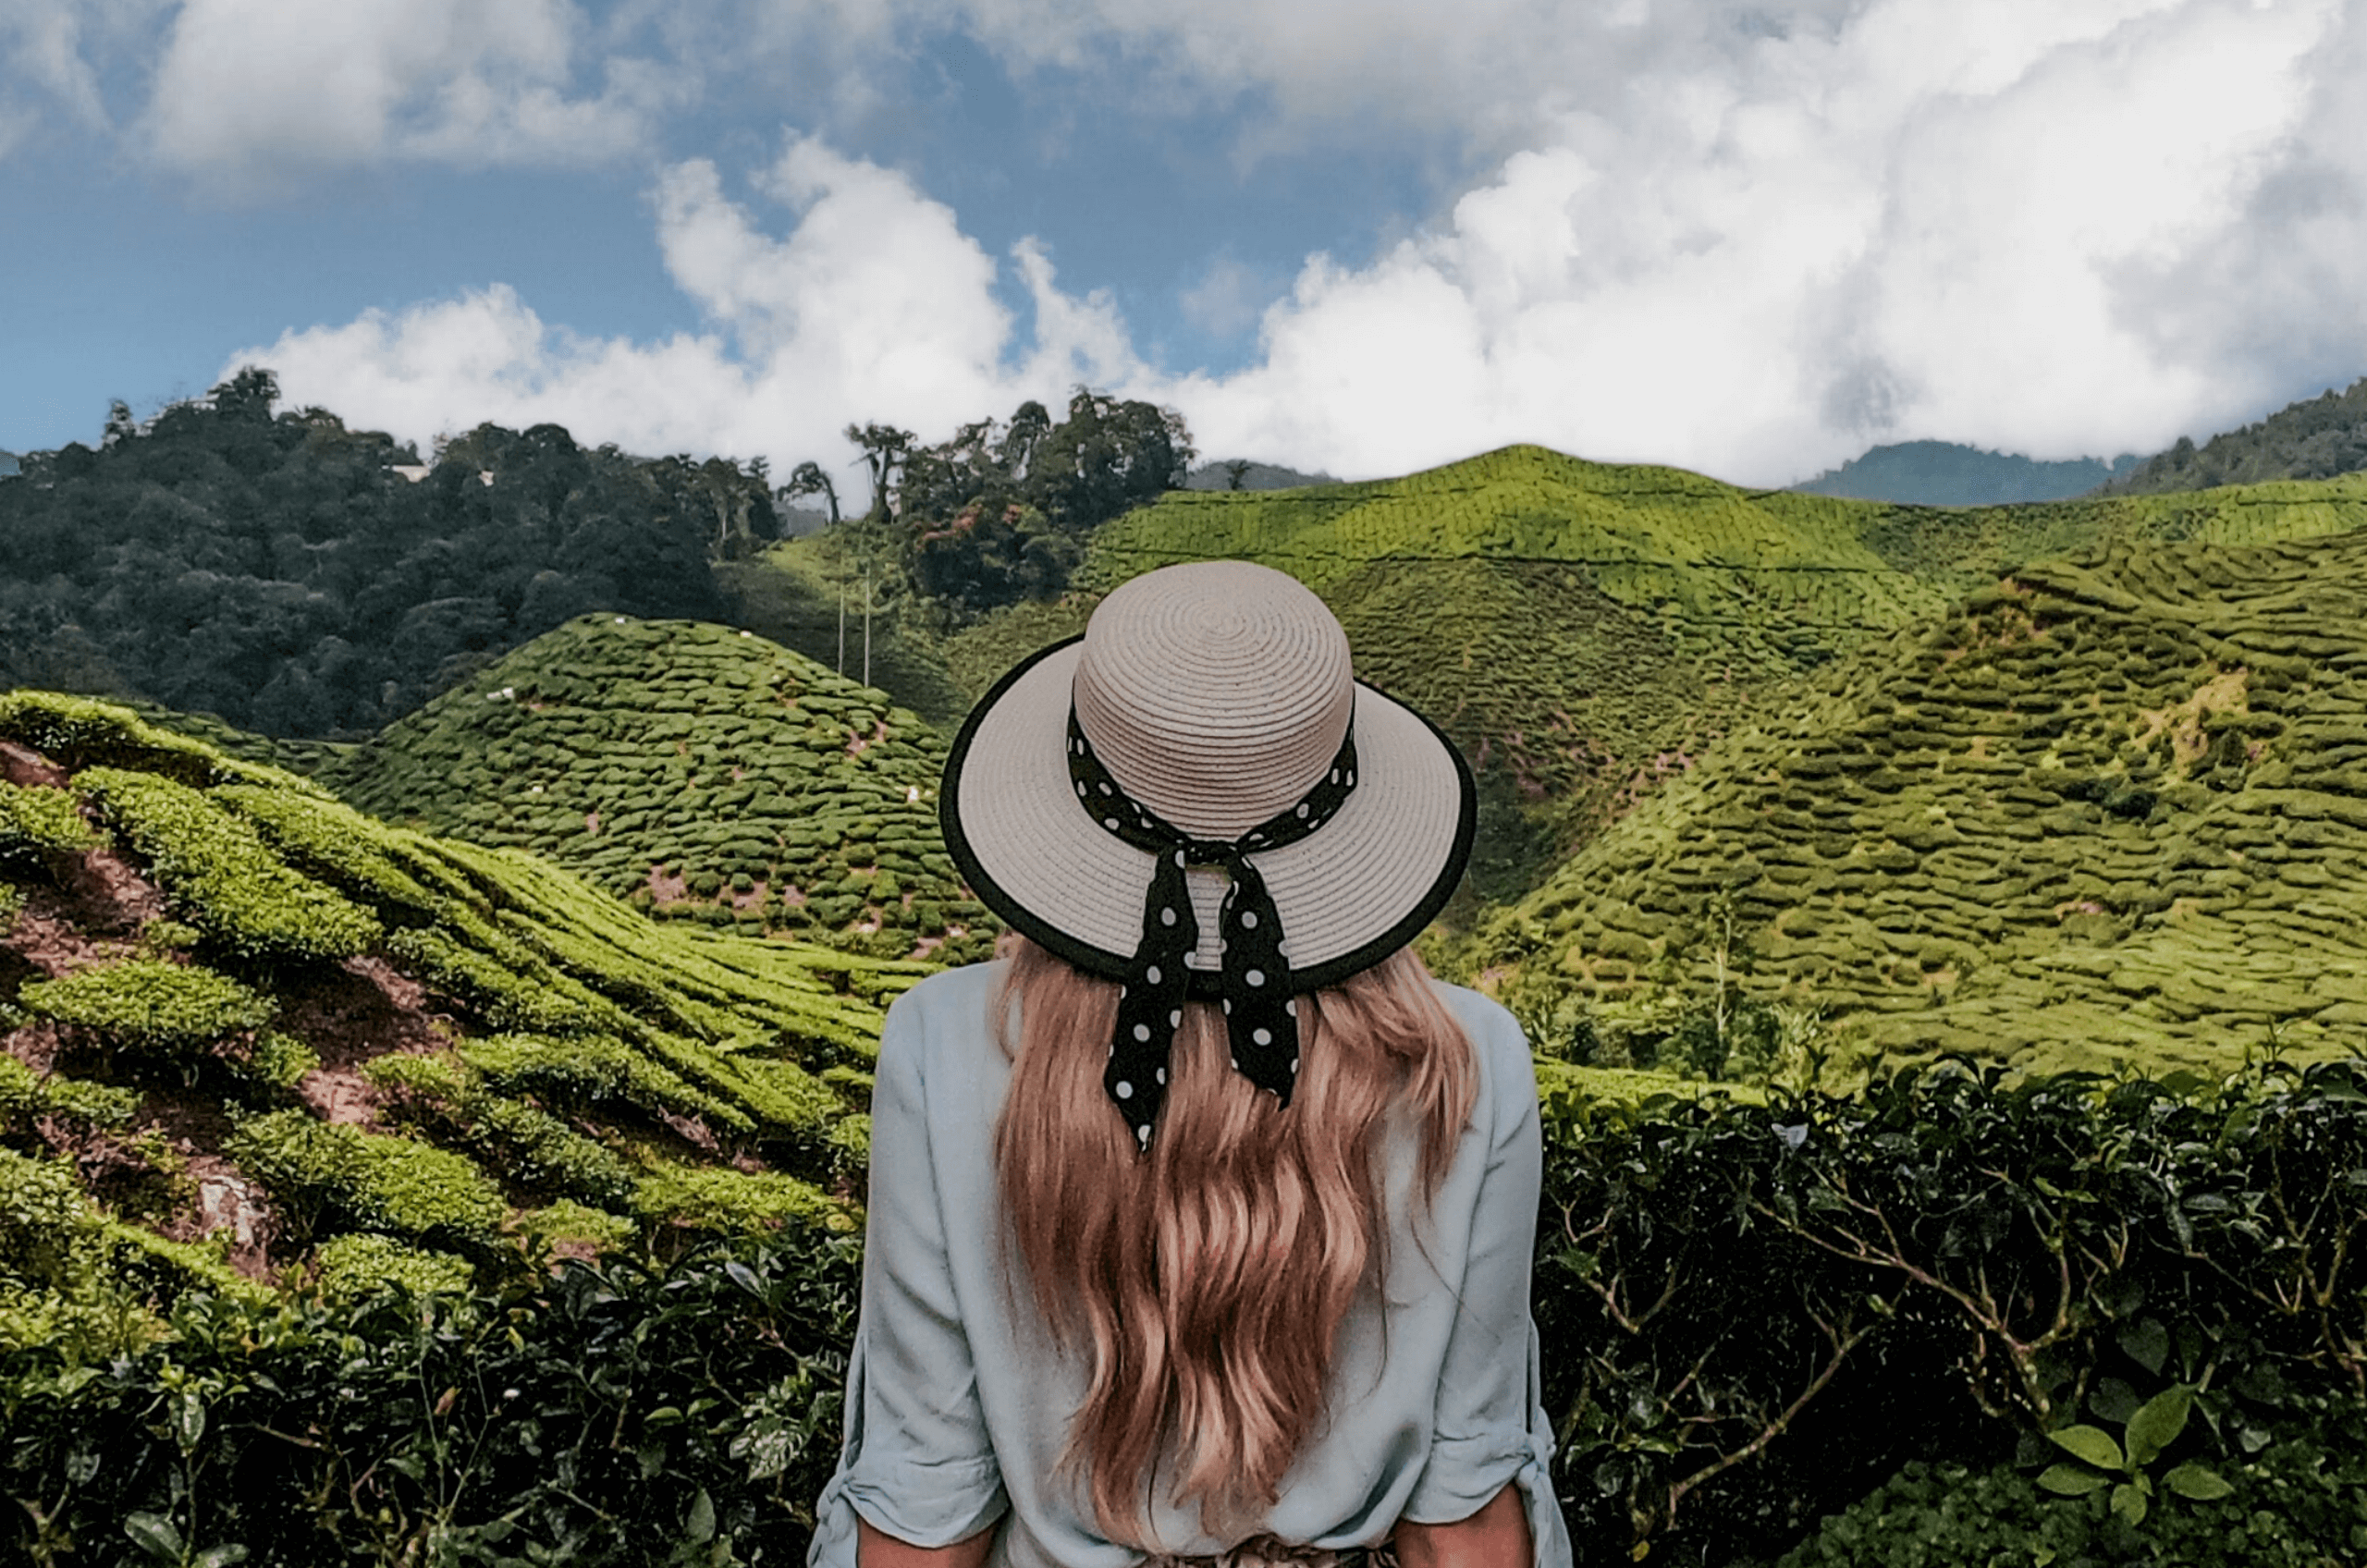 feauture image for the 8 things to do that will make you fall in love with Malaysia blog